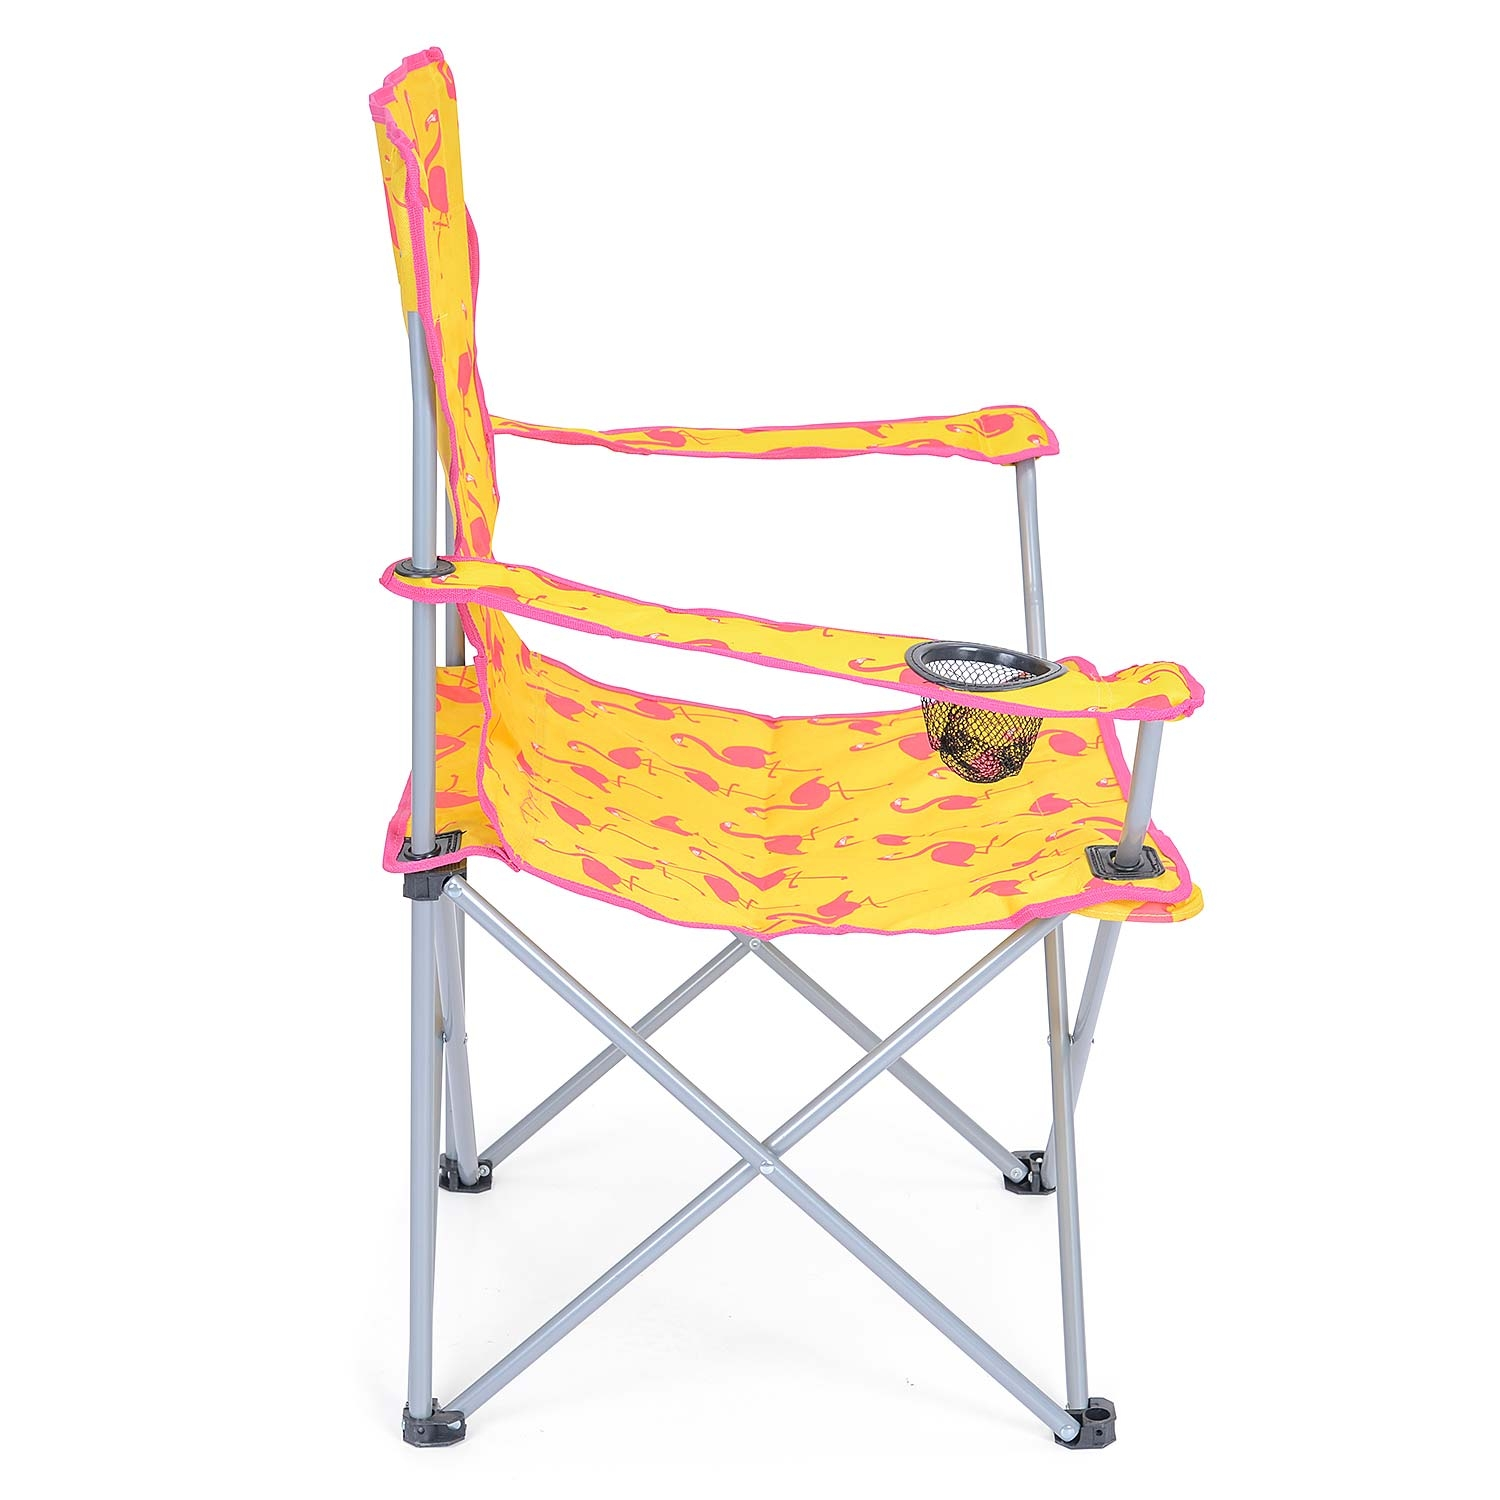 Folding-Camping-Chair-Lightweight-Beach-Festival-Outdoor-Travel-Seat-Flamingo thumbnail 13